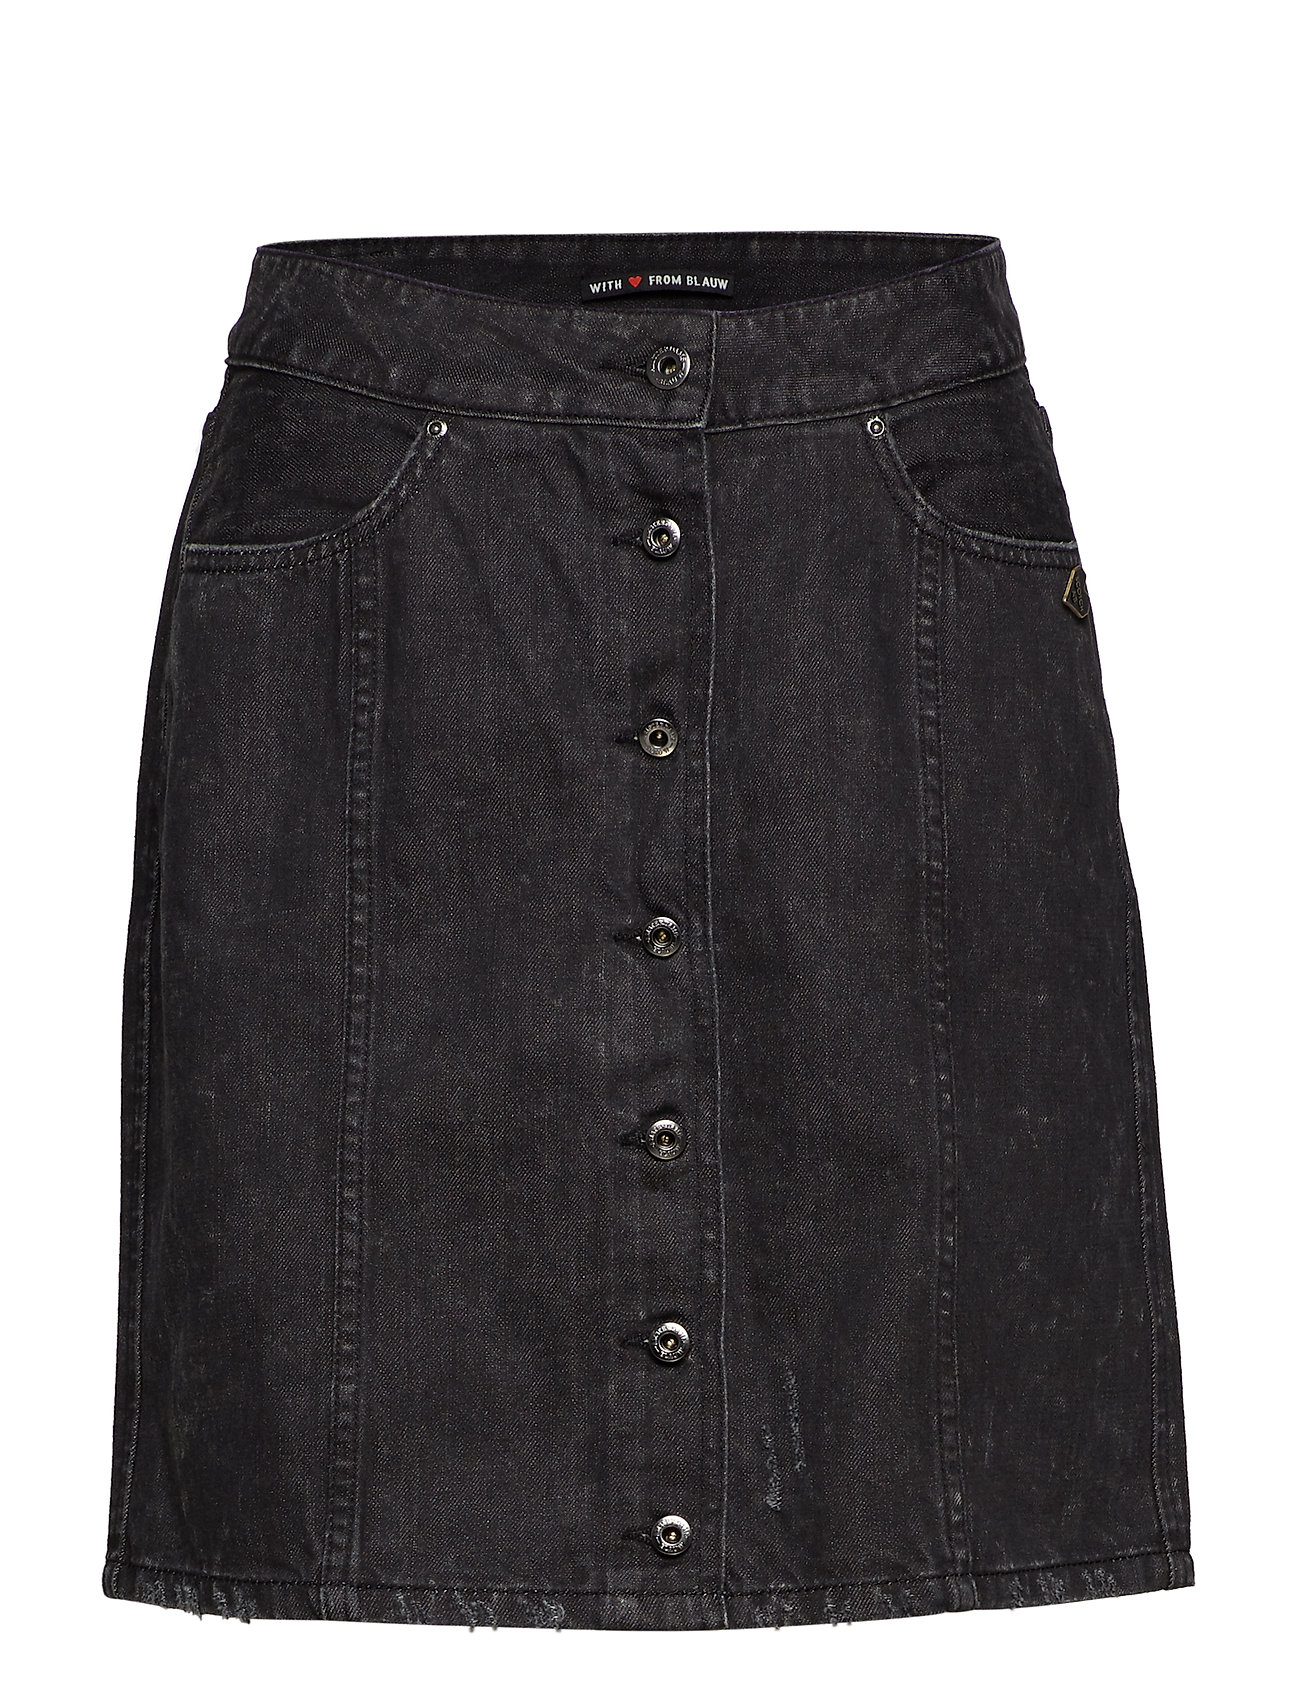 SCOTCH & SODA Black Denim Pencil Skirt Kurzes Kleid Schwarz SCOTCH & SODA